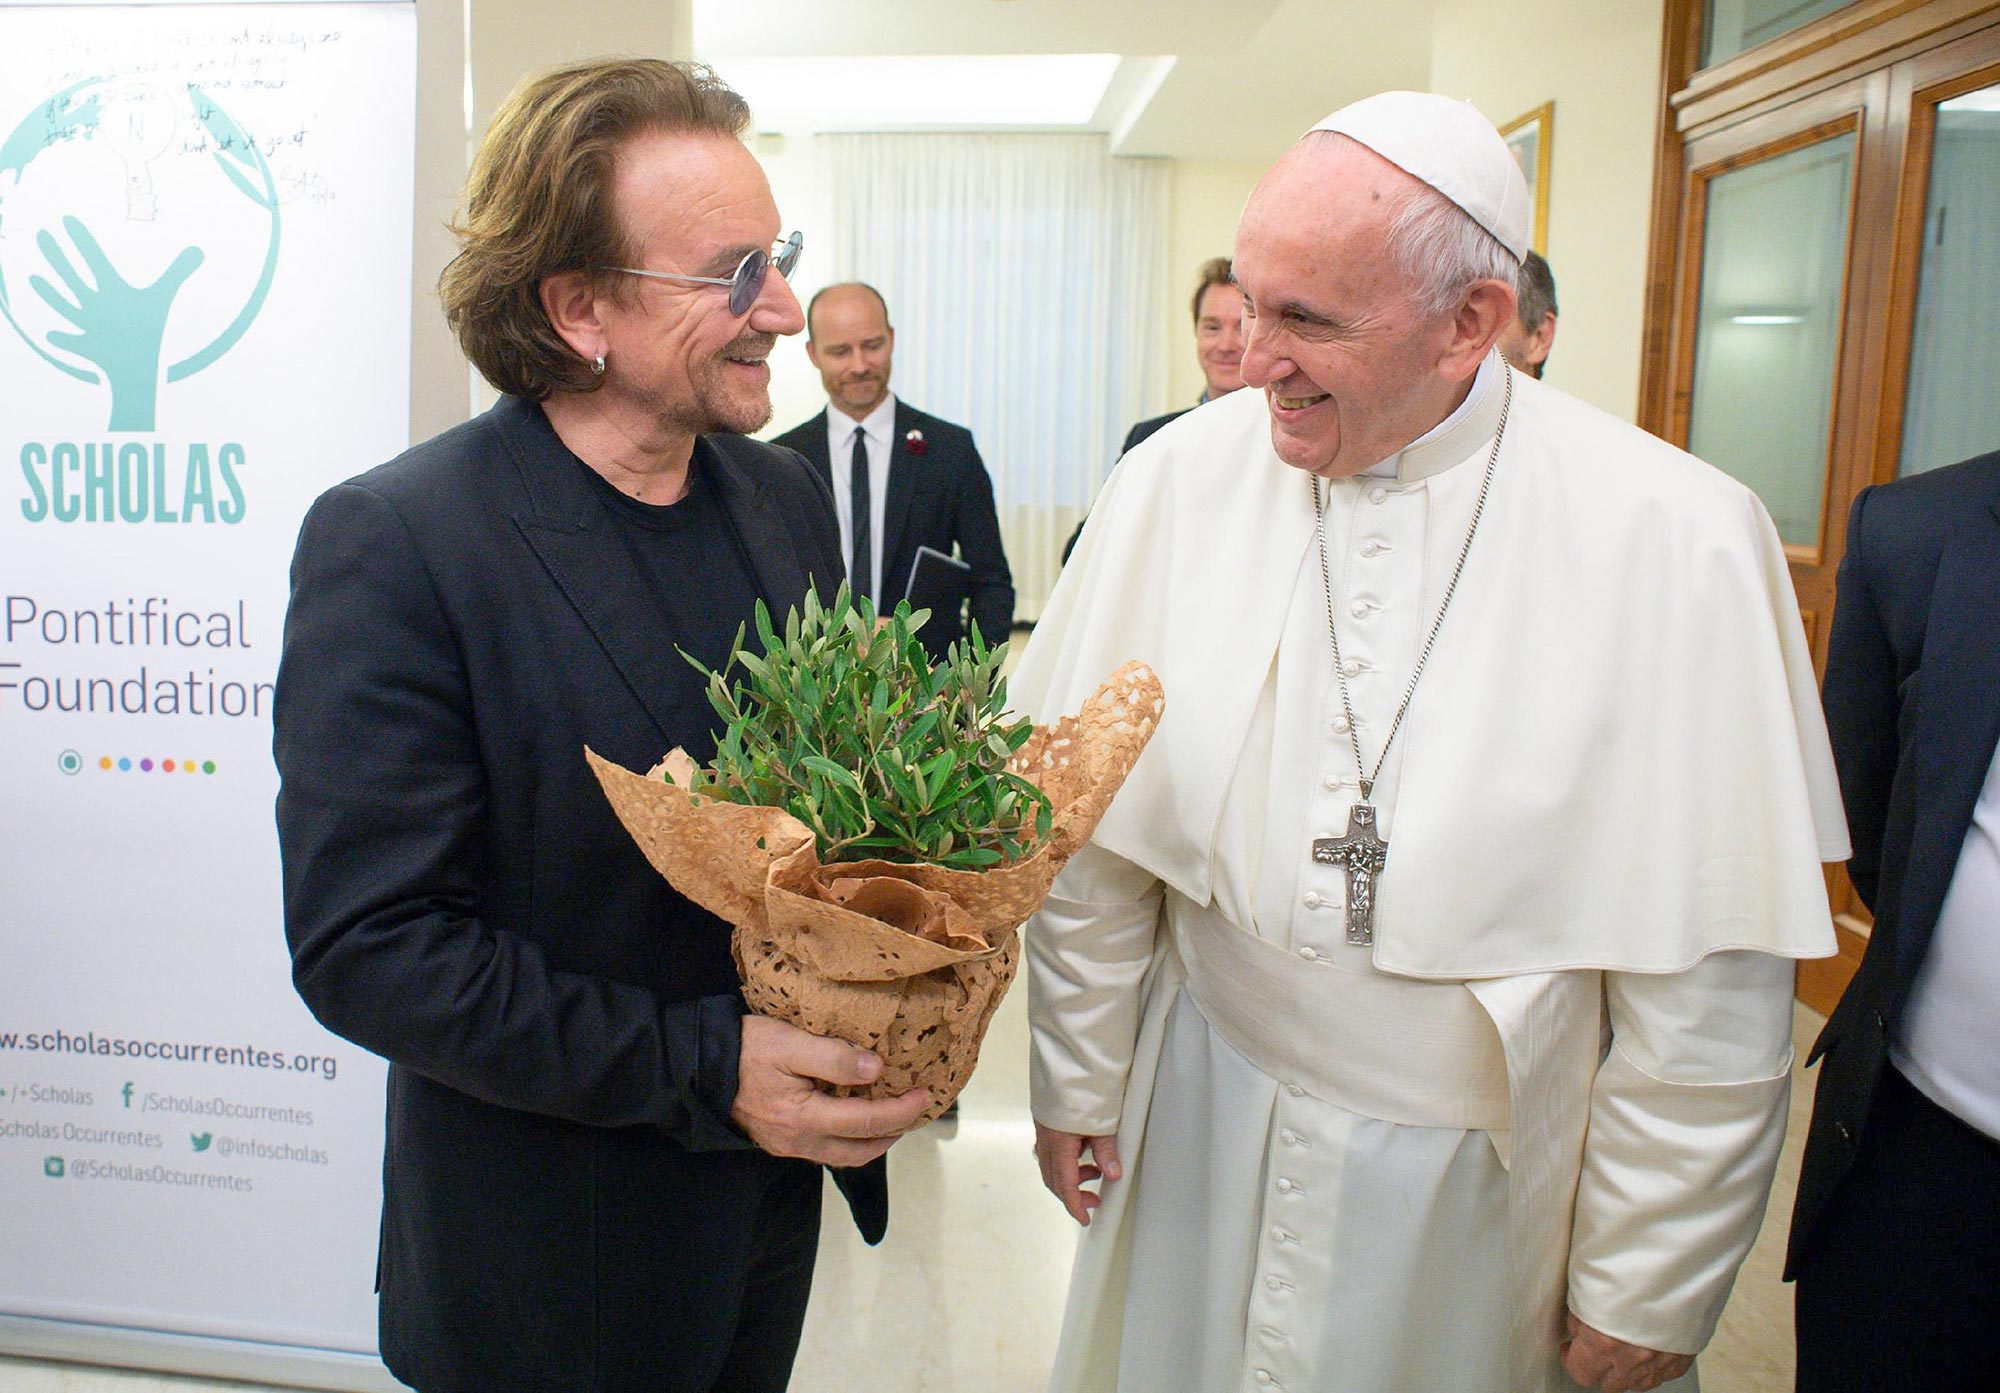 Pope Francis meets Bono Vox, Vatican City, Vatican City State (Holy See) - 19 Sep 2018